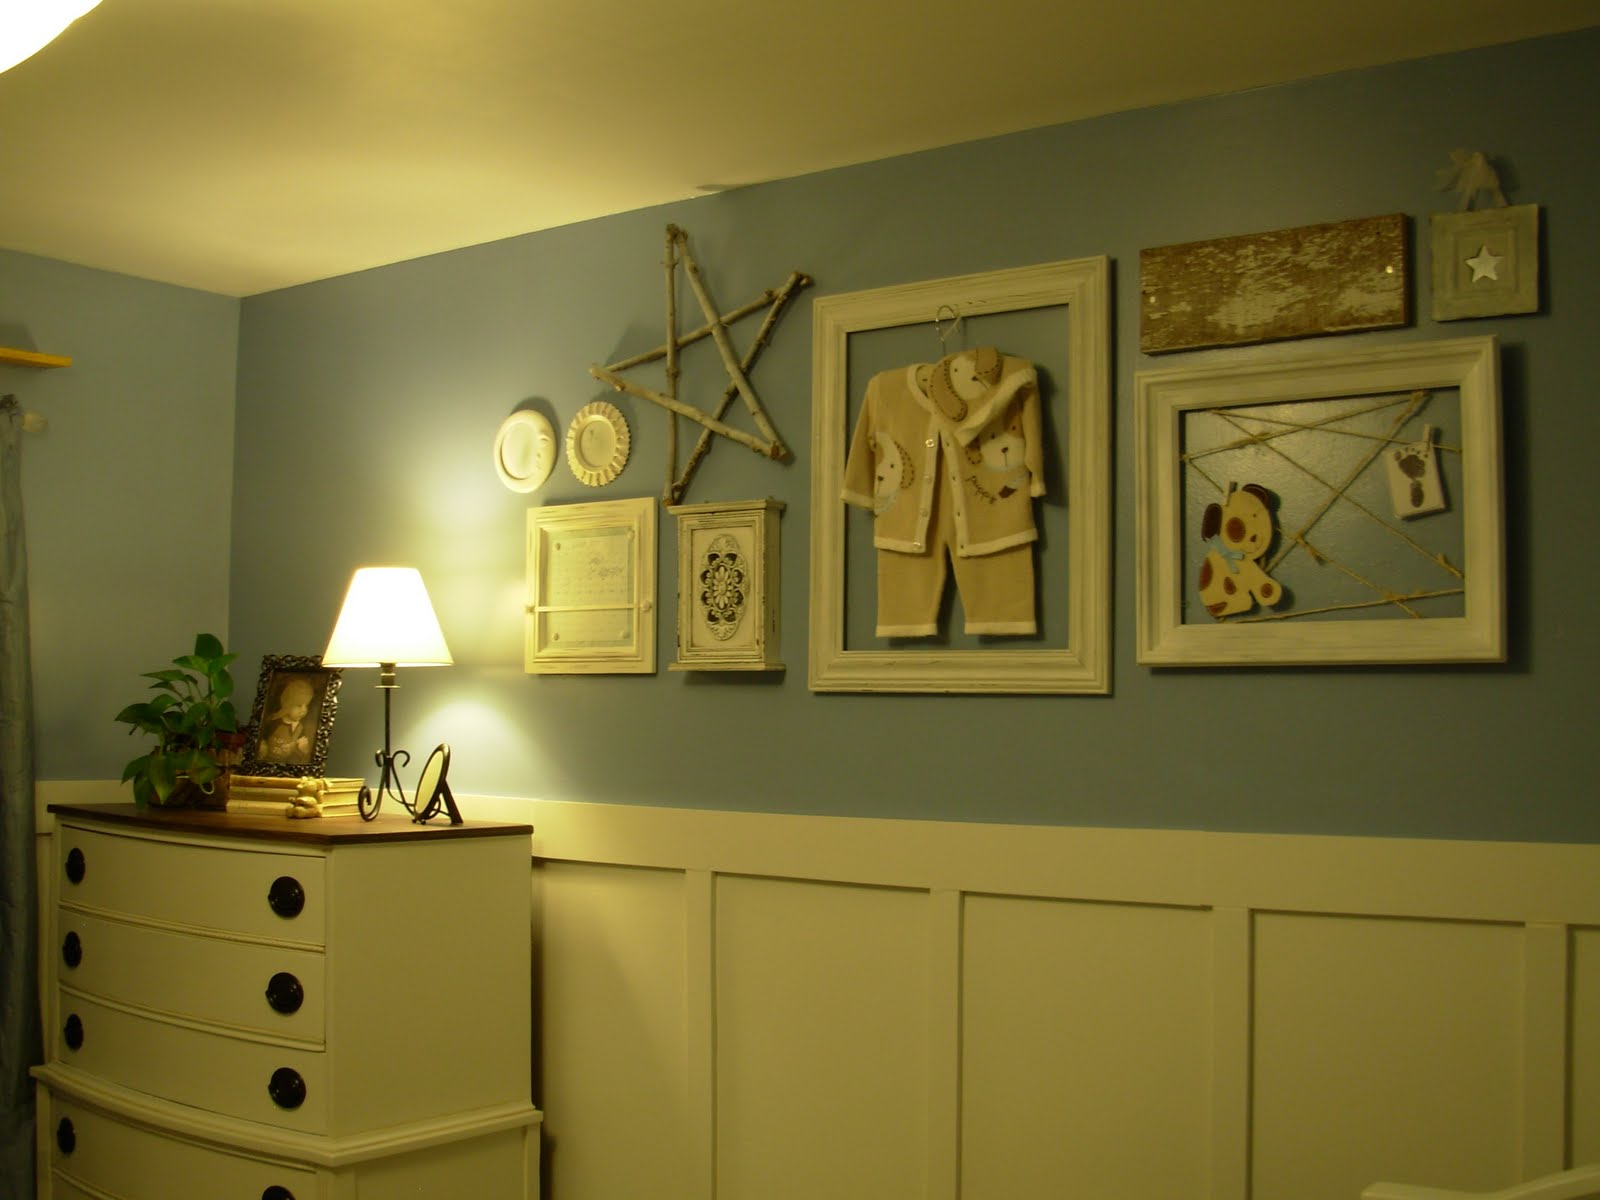 Lovely Art Gallery Walls Images - The Wall Art Decorations ...